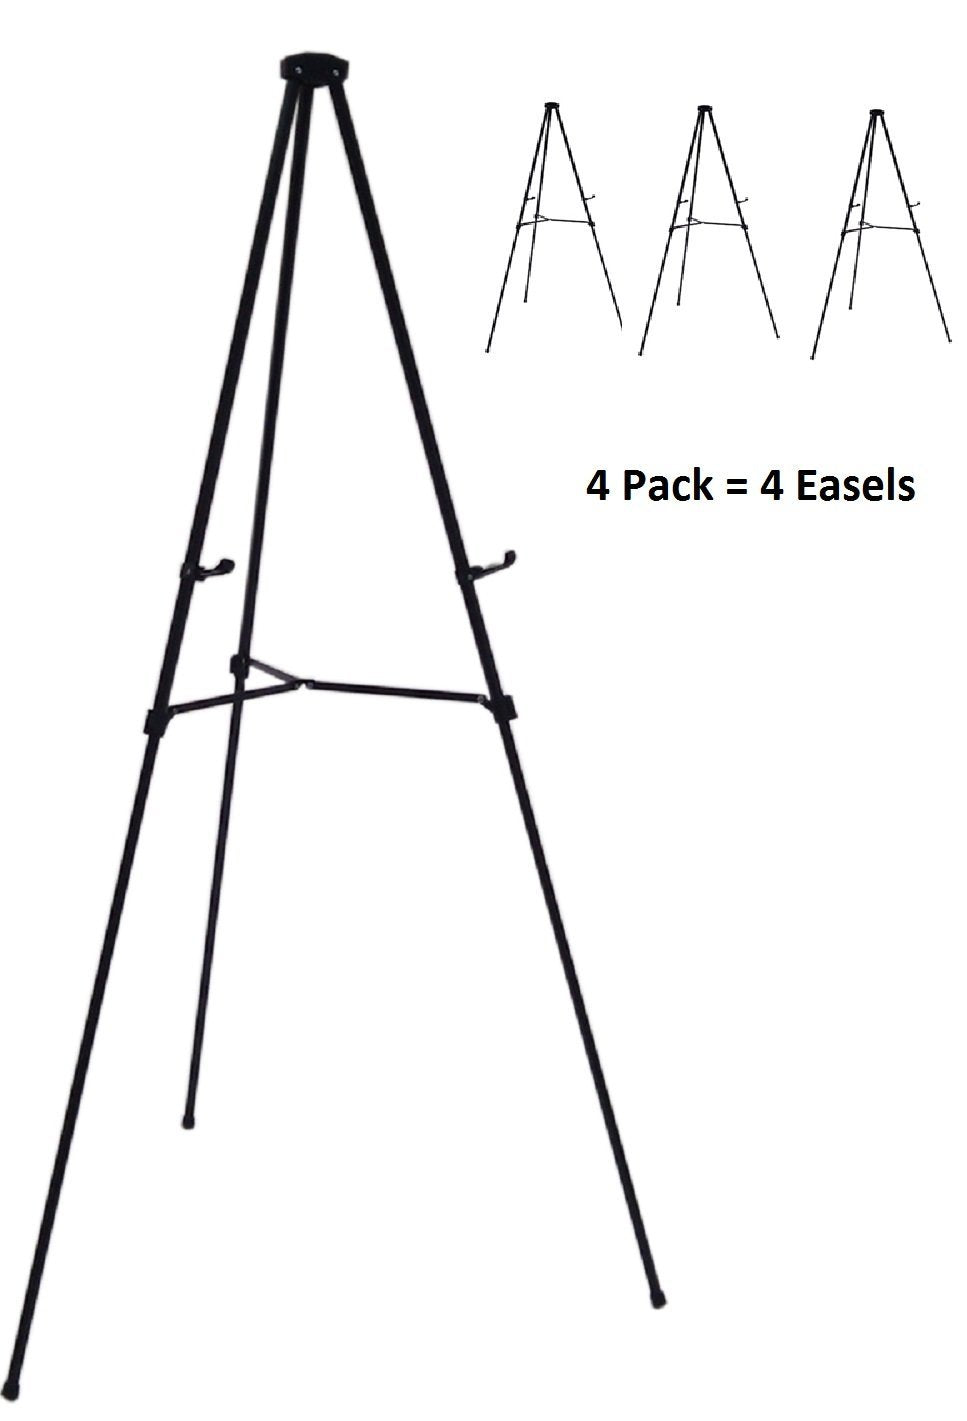 Pack of 4 Lightweight Aluminum Telescoping Display Easel, Black (4 pack)